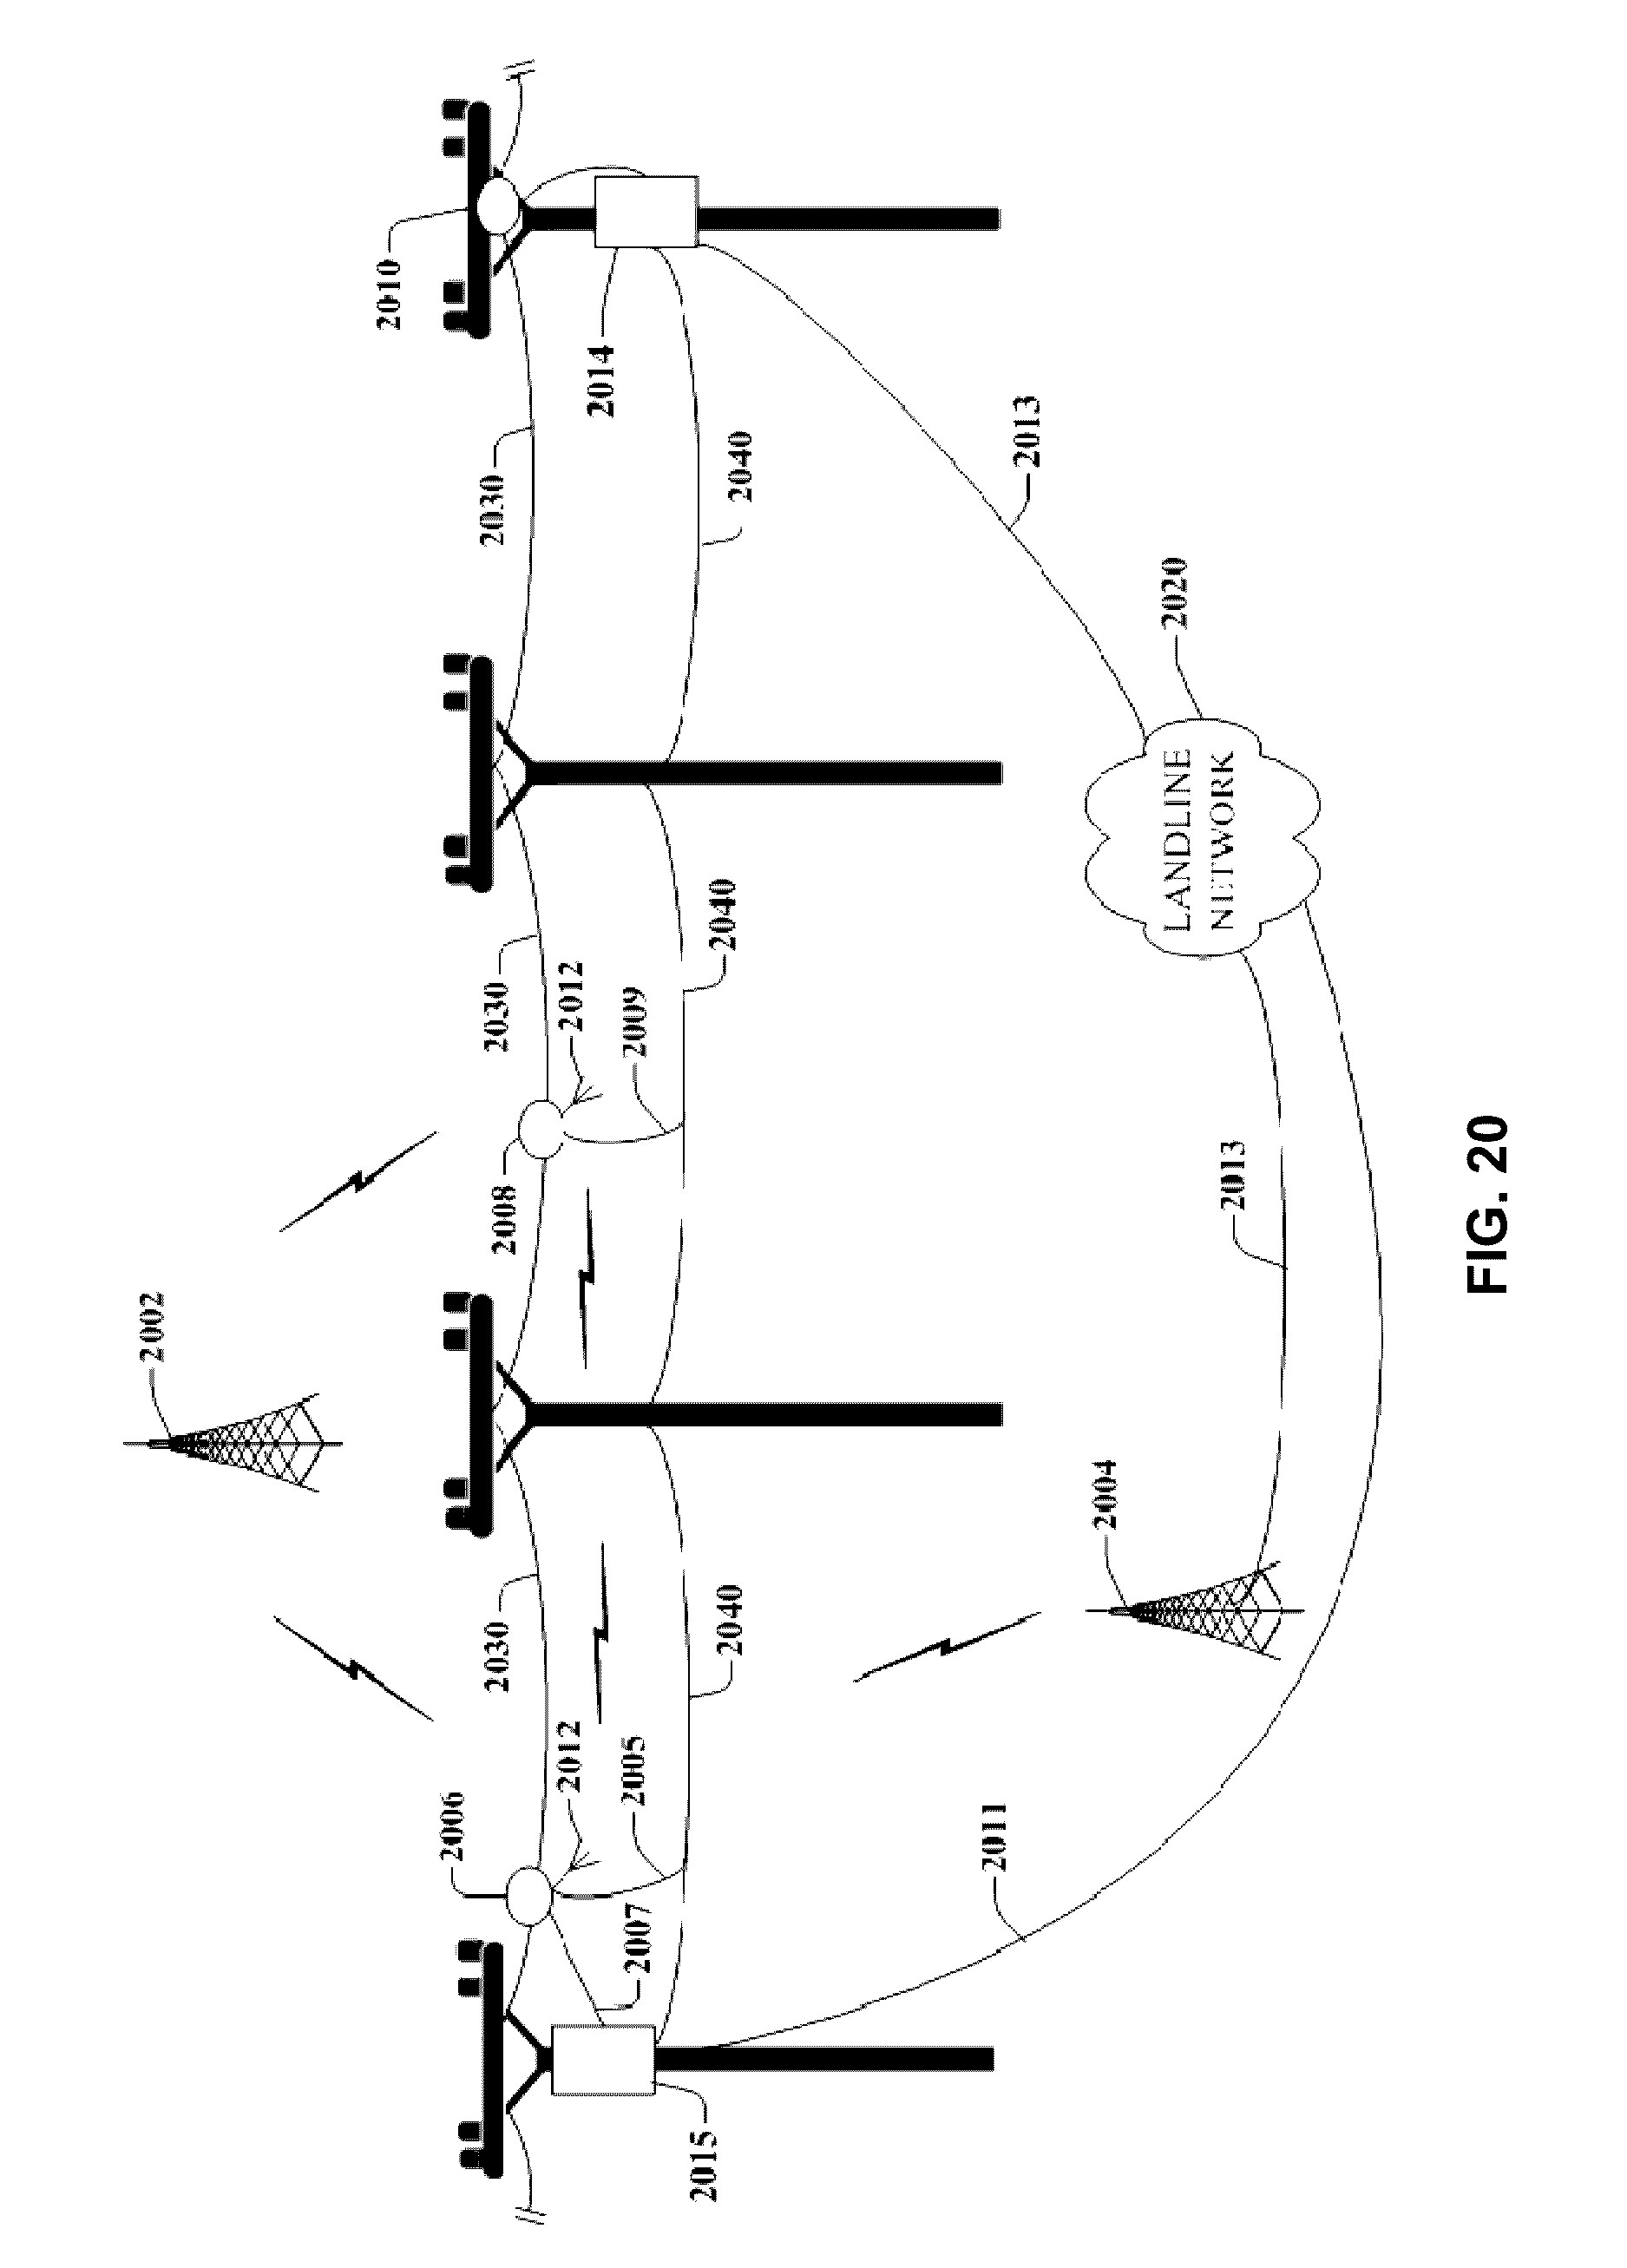 us9615269b2 method and apparatus that provides fault tolerance in rh patents google com